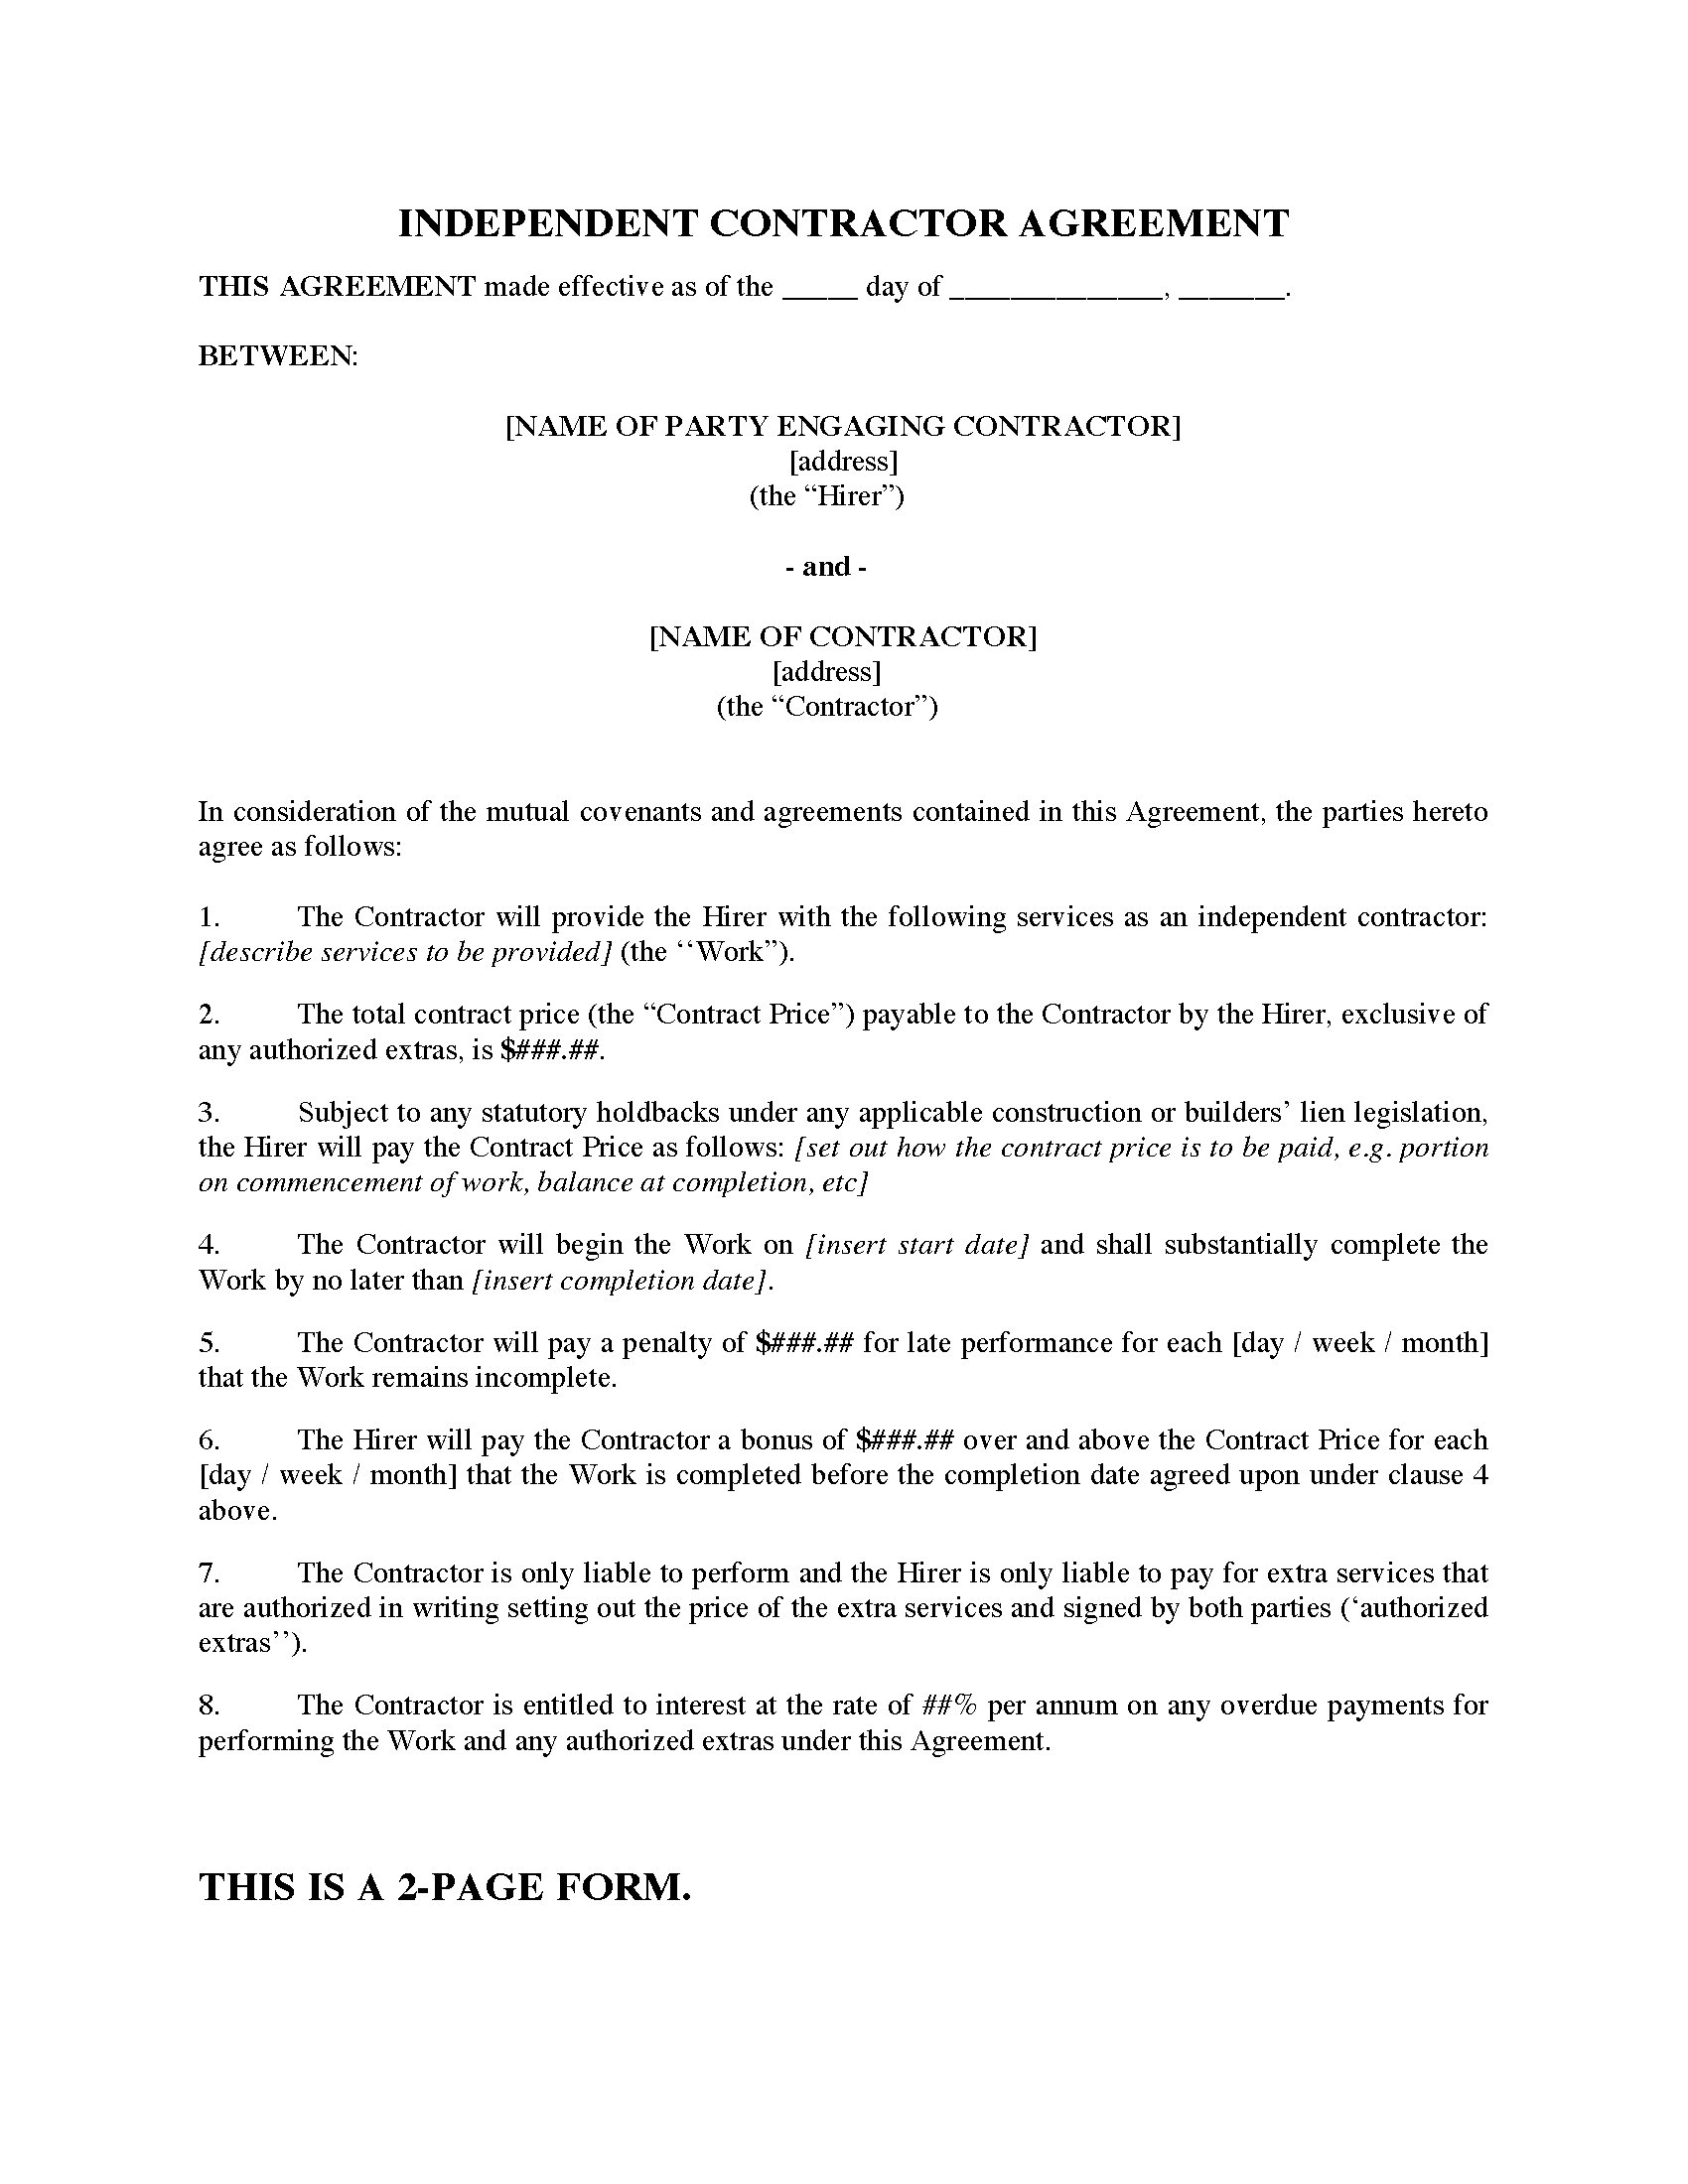 Construction Contractor Agreement with Late Completion Penalty – Construction Agreement Form